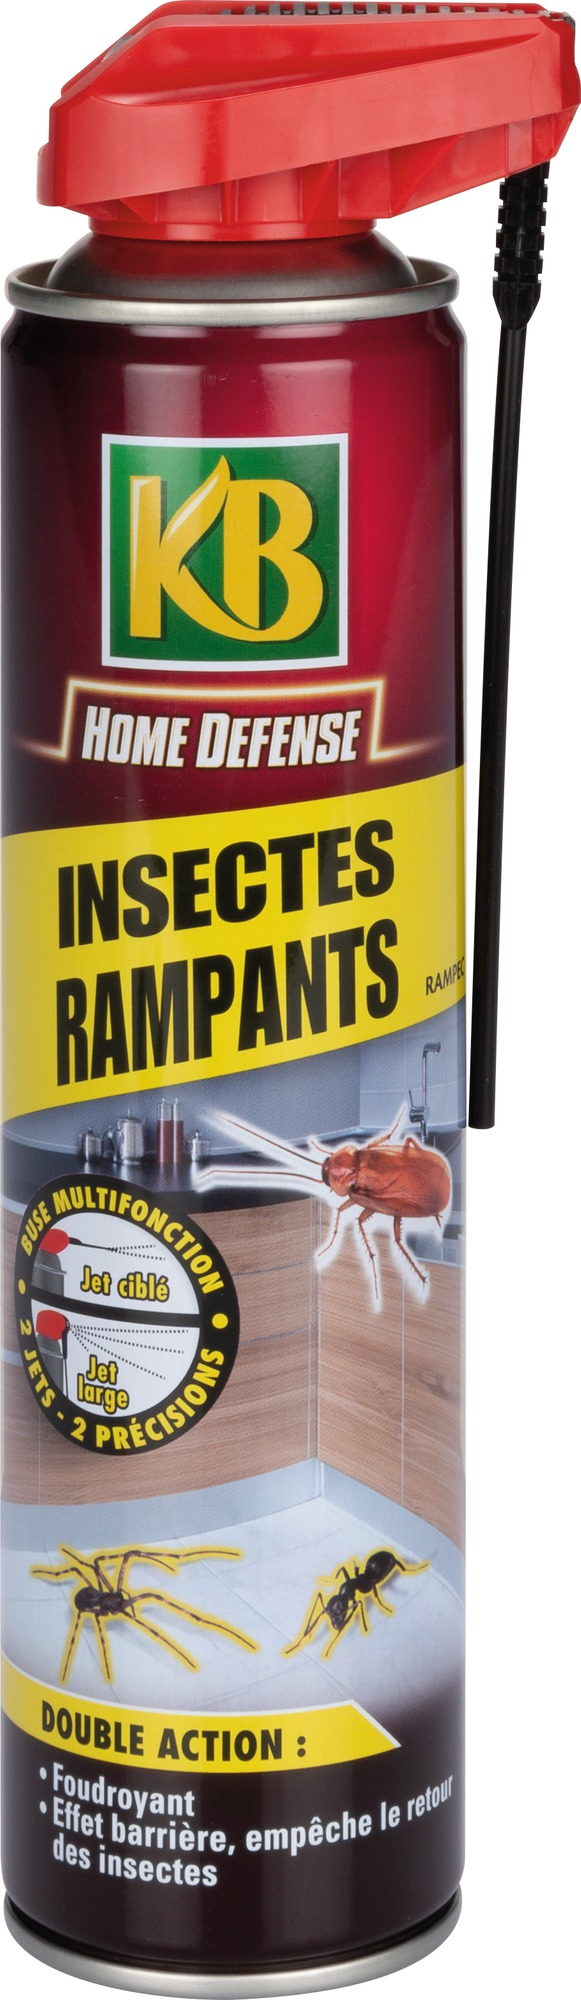 Insecticide insectes rampants KB jardin - Contenance 400 ml